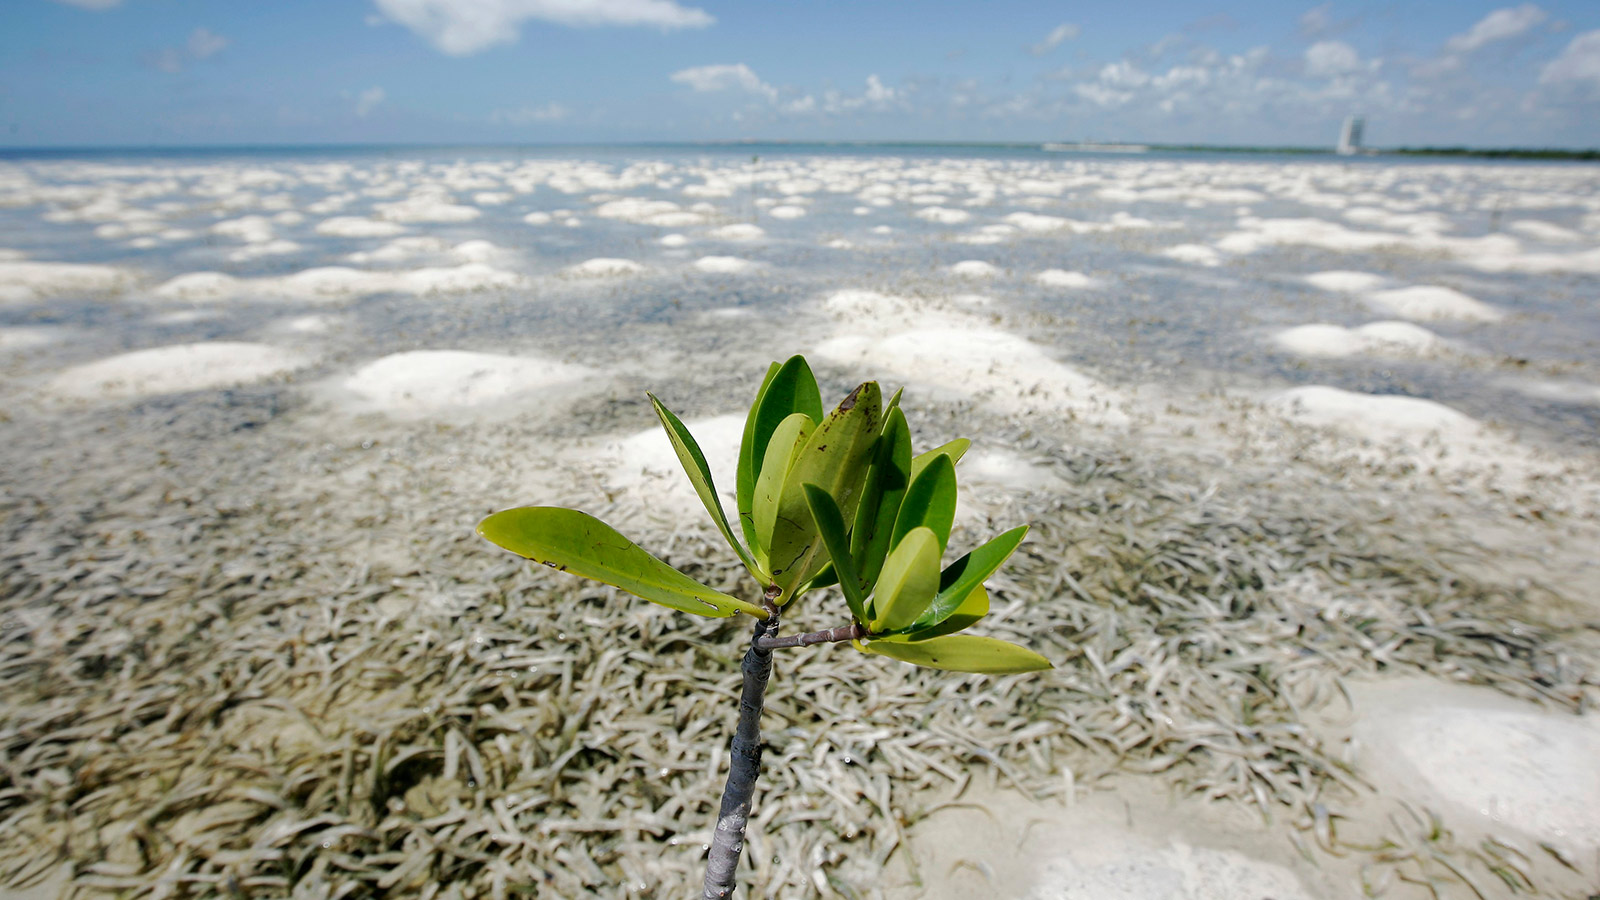 A mangrove plant grows on a shore in Cancun